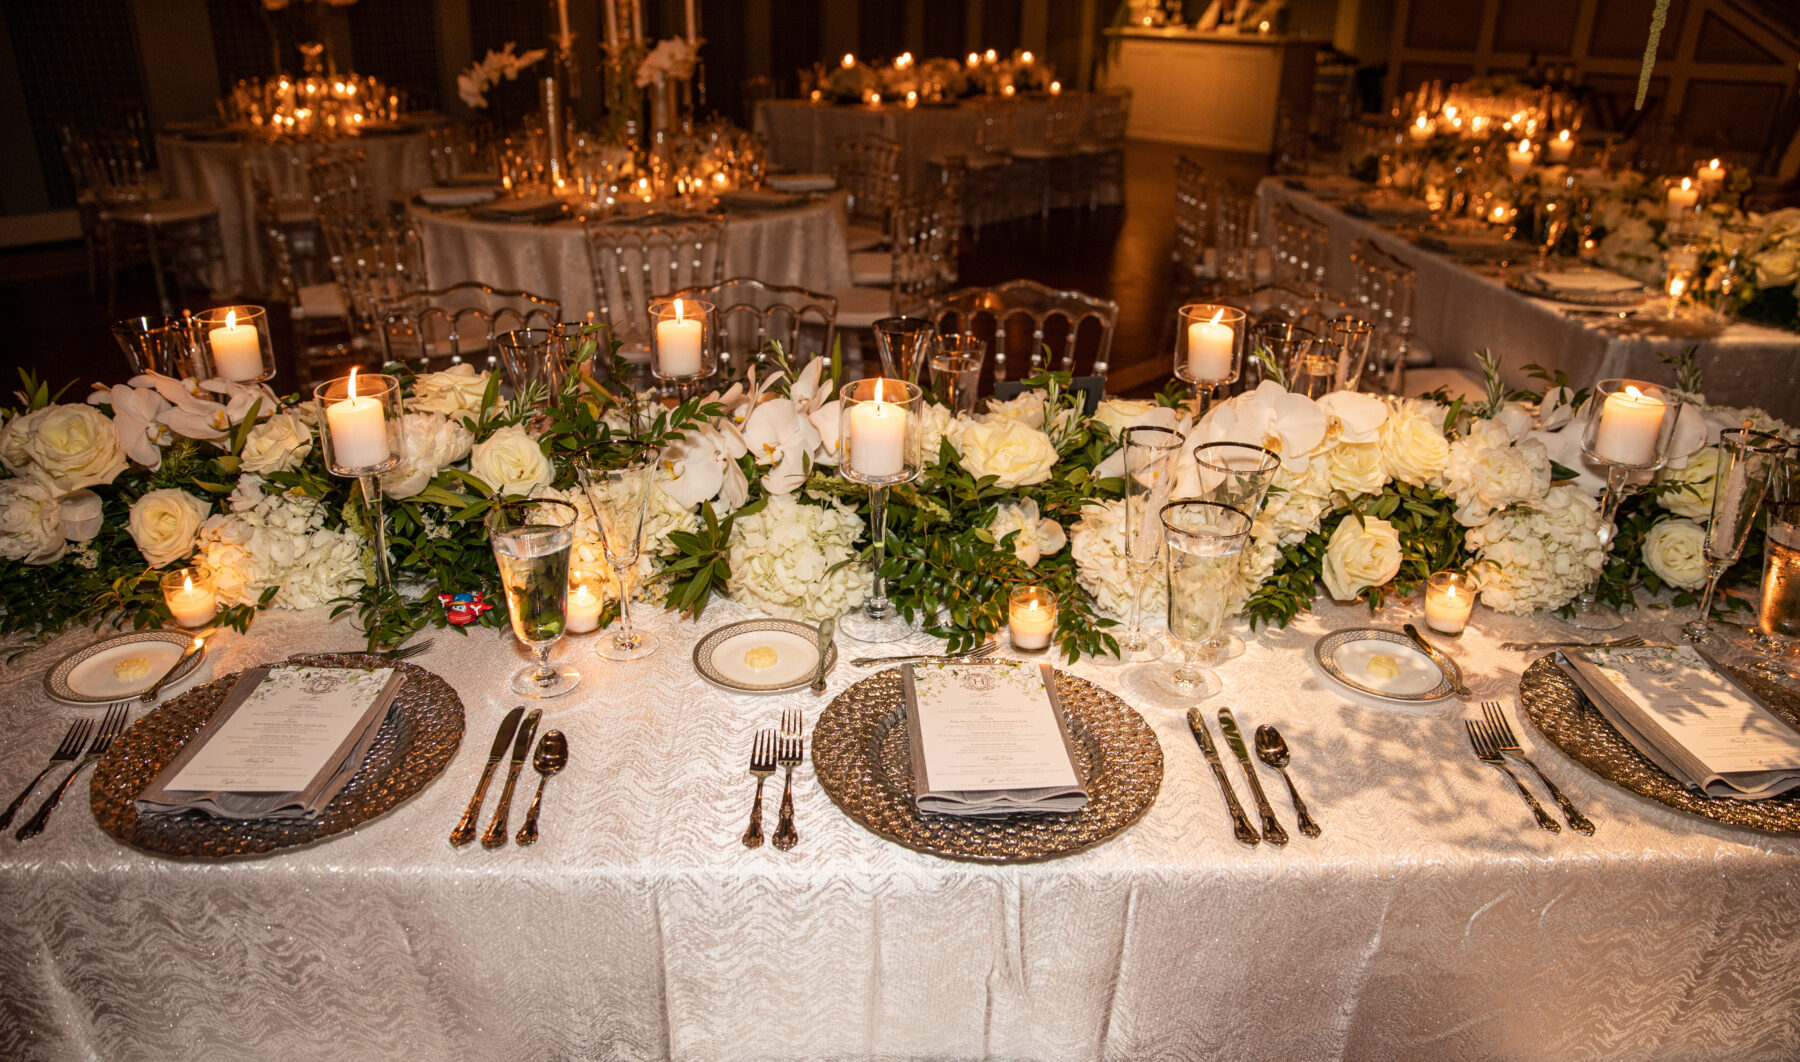 Wedding table decor: Floral Filled Luxurious Wedding by LMA Designs featured on Nashville Bride Guide